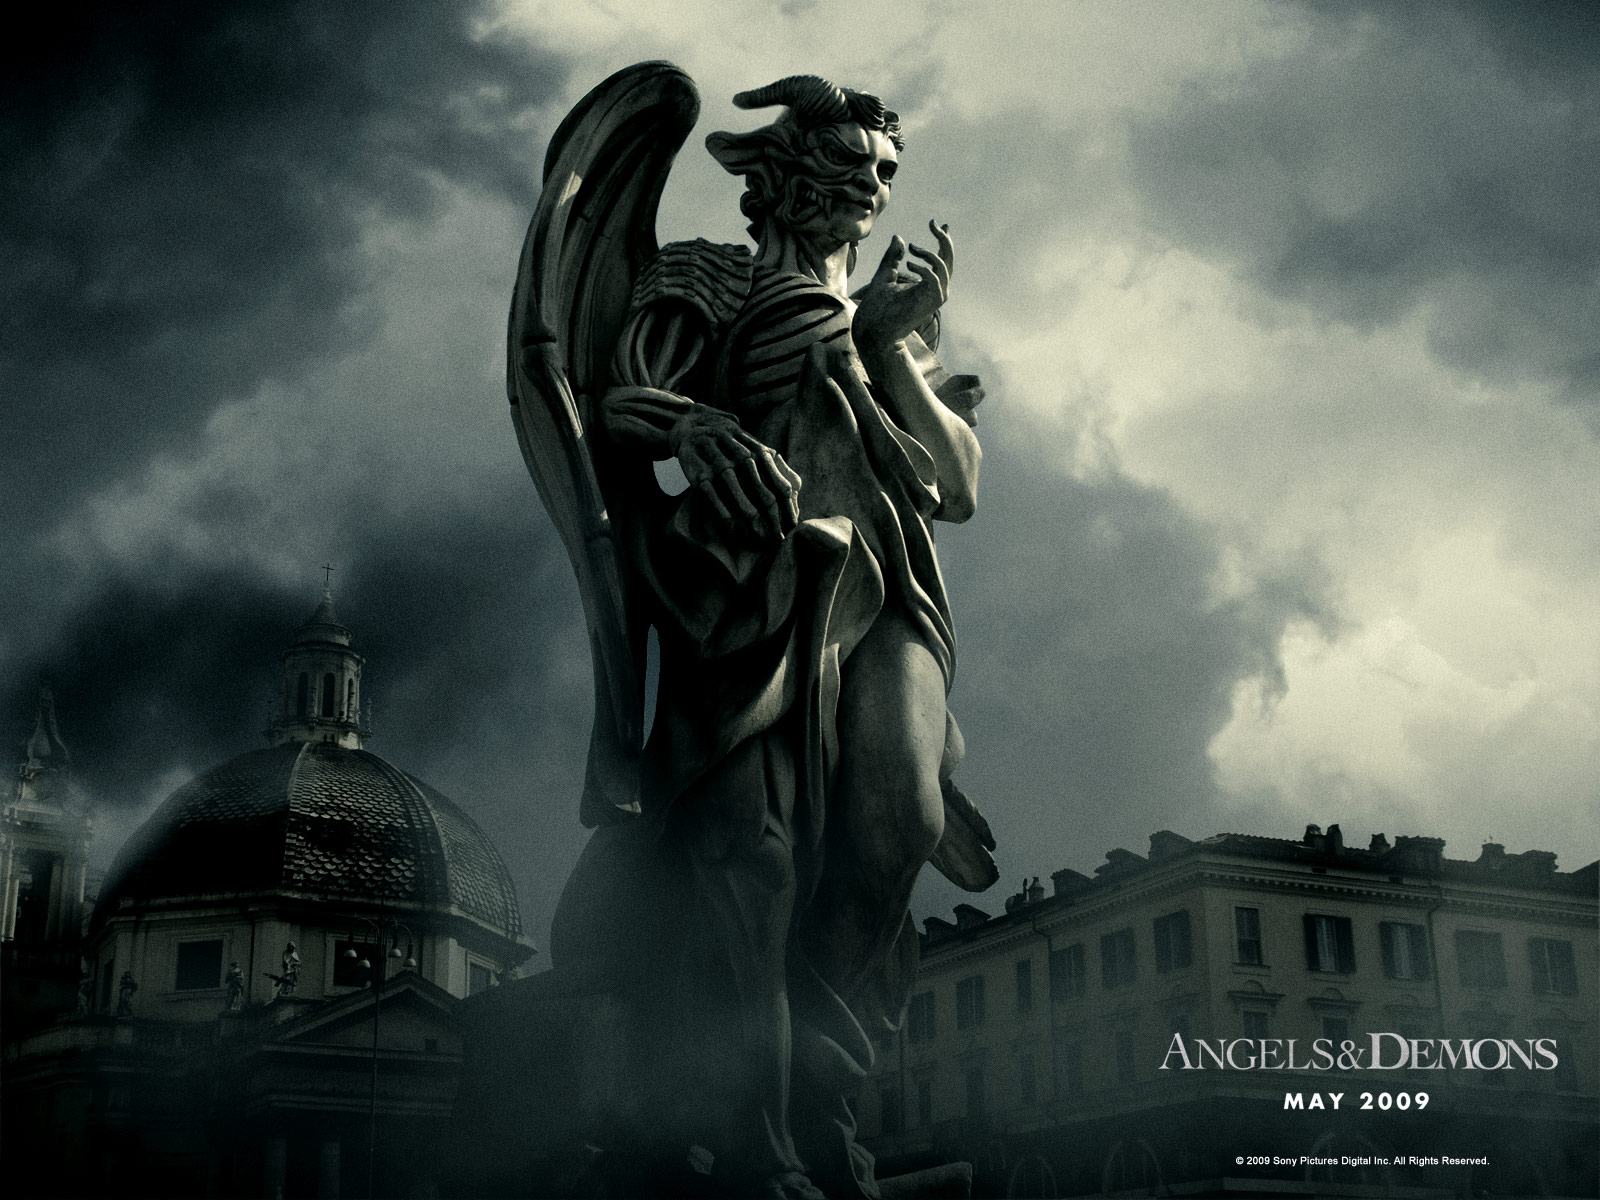 and The Demon Wallpapers Angel and The Demon Myspace Backgrounds 1600x1200